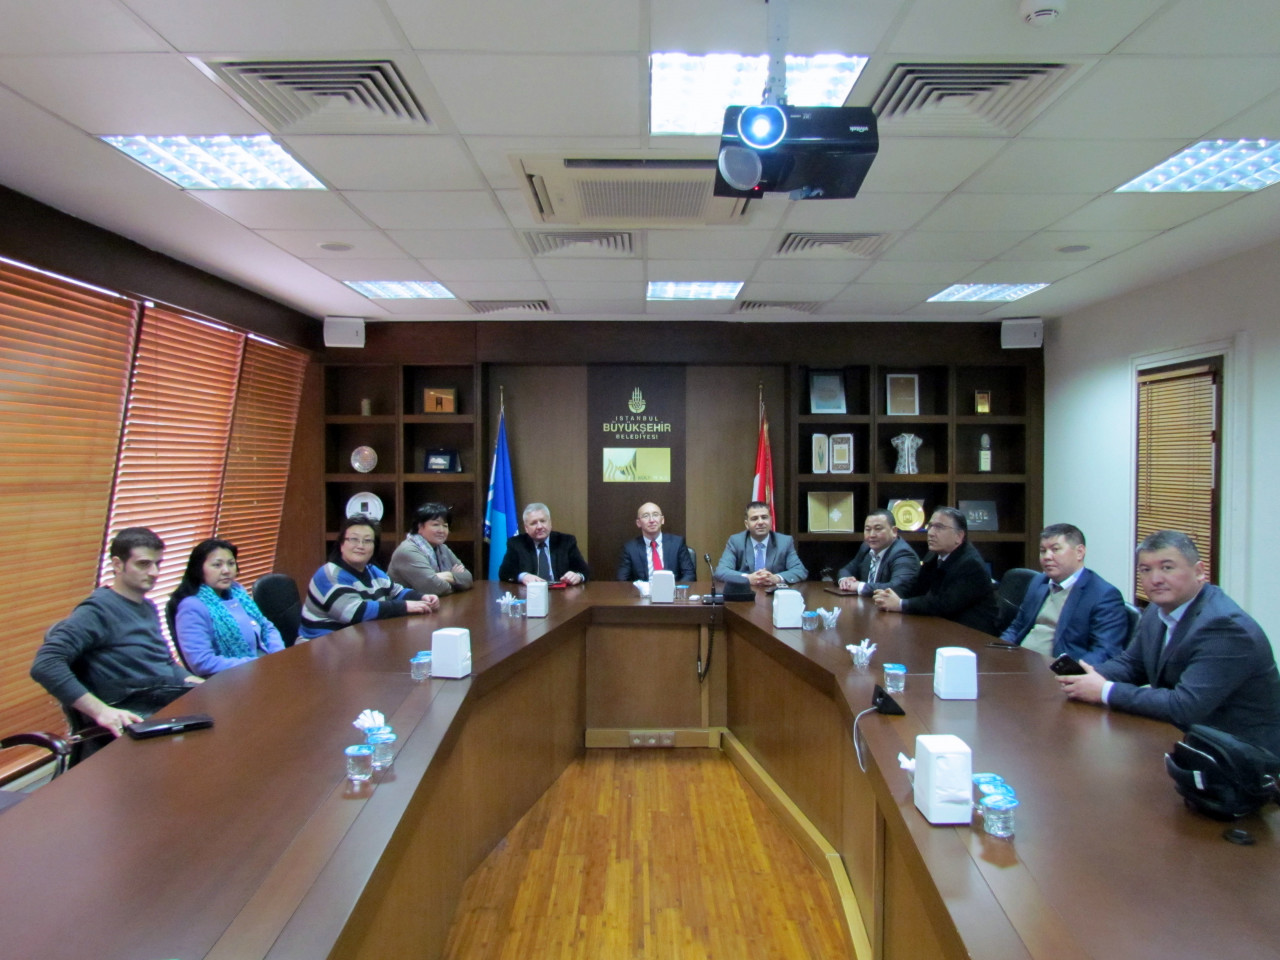 Visit from the Deputy Minister Chakiev to Culture Co. Galeri - 15. Resim